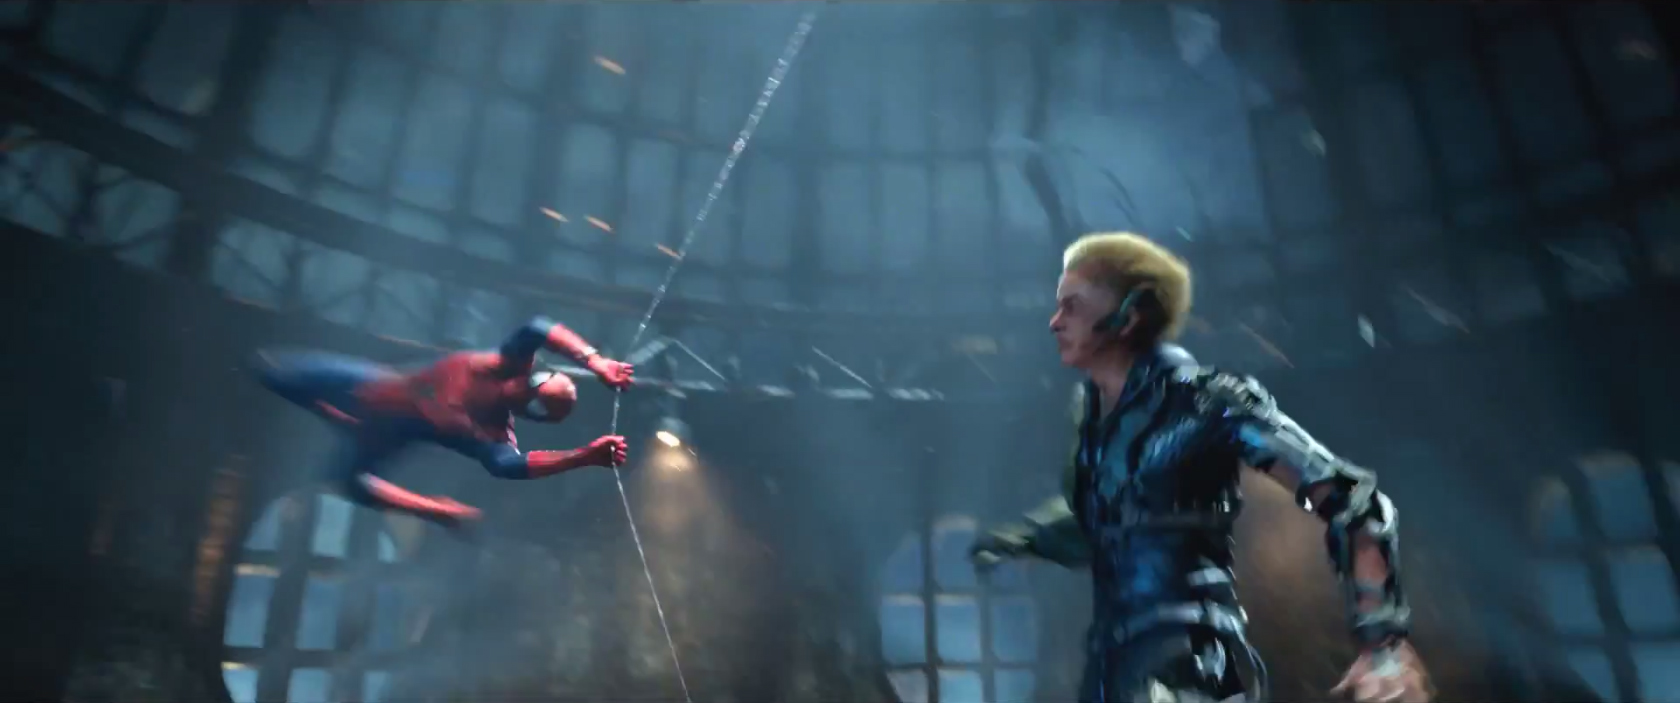 The Amazing Spider-Man 2 (Trailer #1) Review | Tim's Film ...